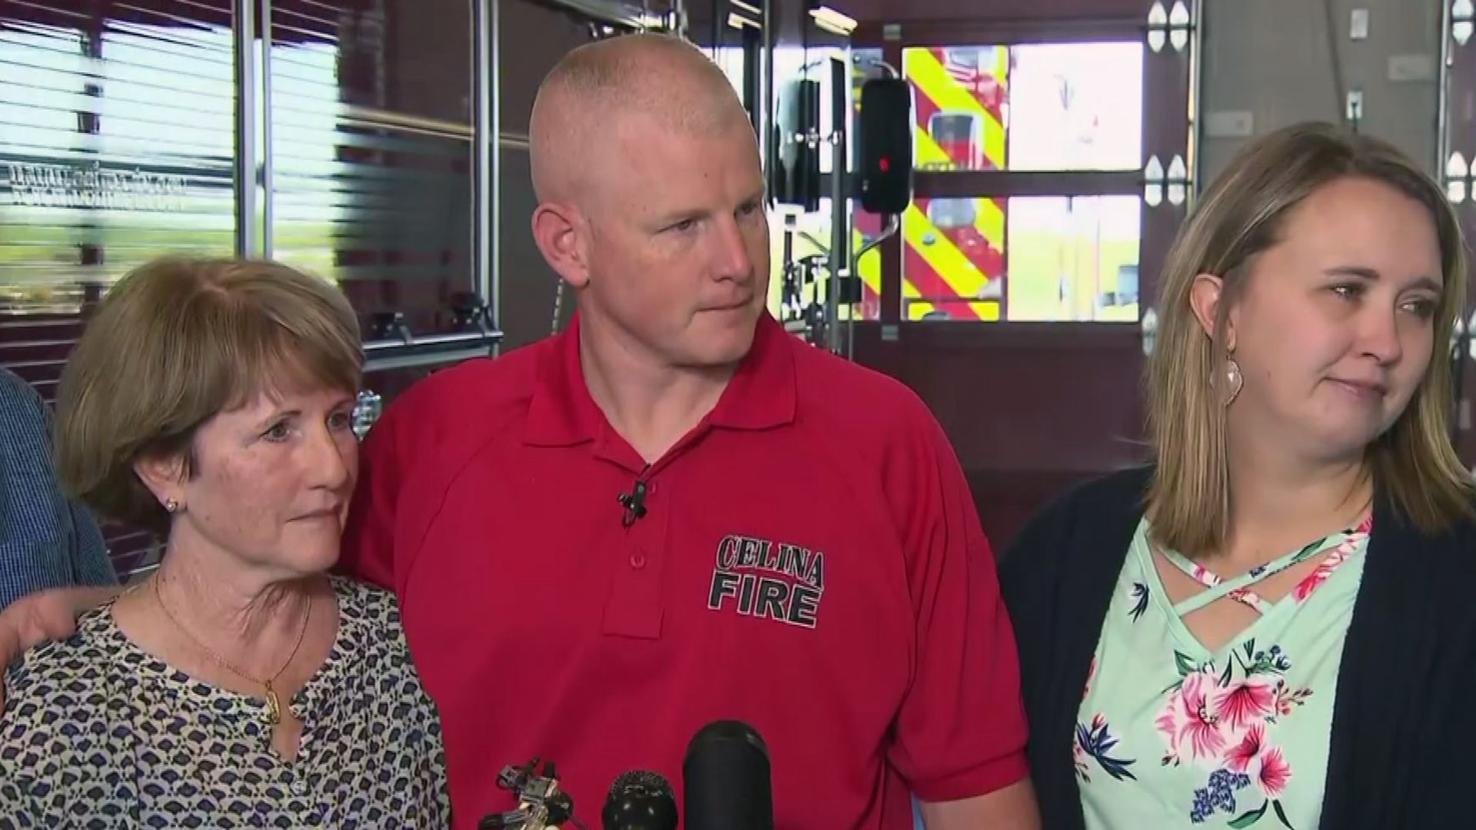 Southwest plane rescuer: 'God created a servant heart in ...